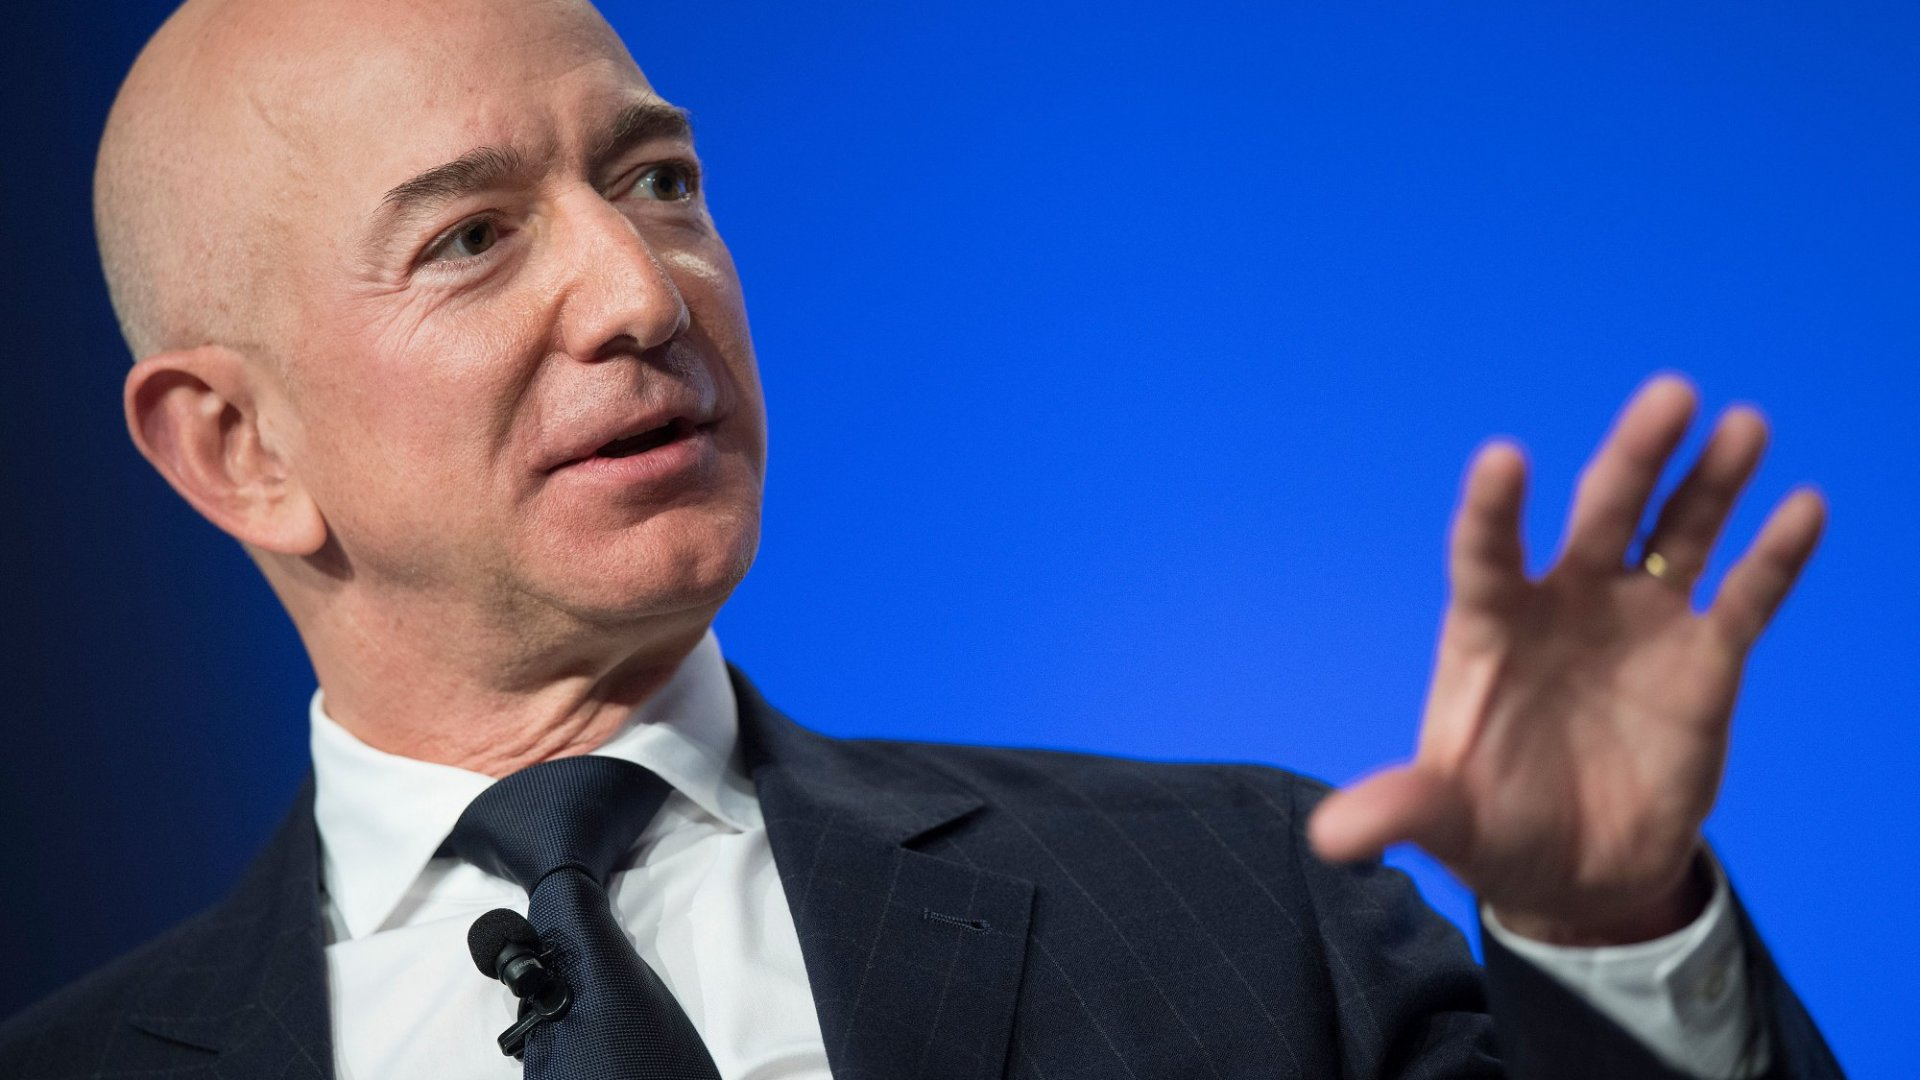 Jeff Bezos Just Compared Running a Business to Doing a Handstand, and His Analogy Is Pretty Accurate